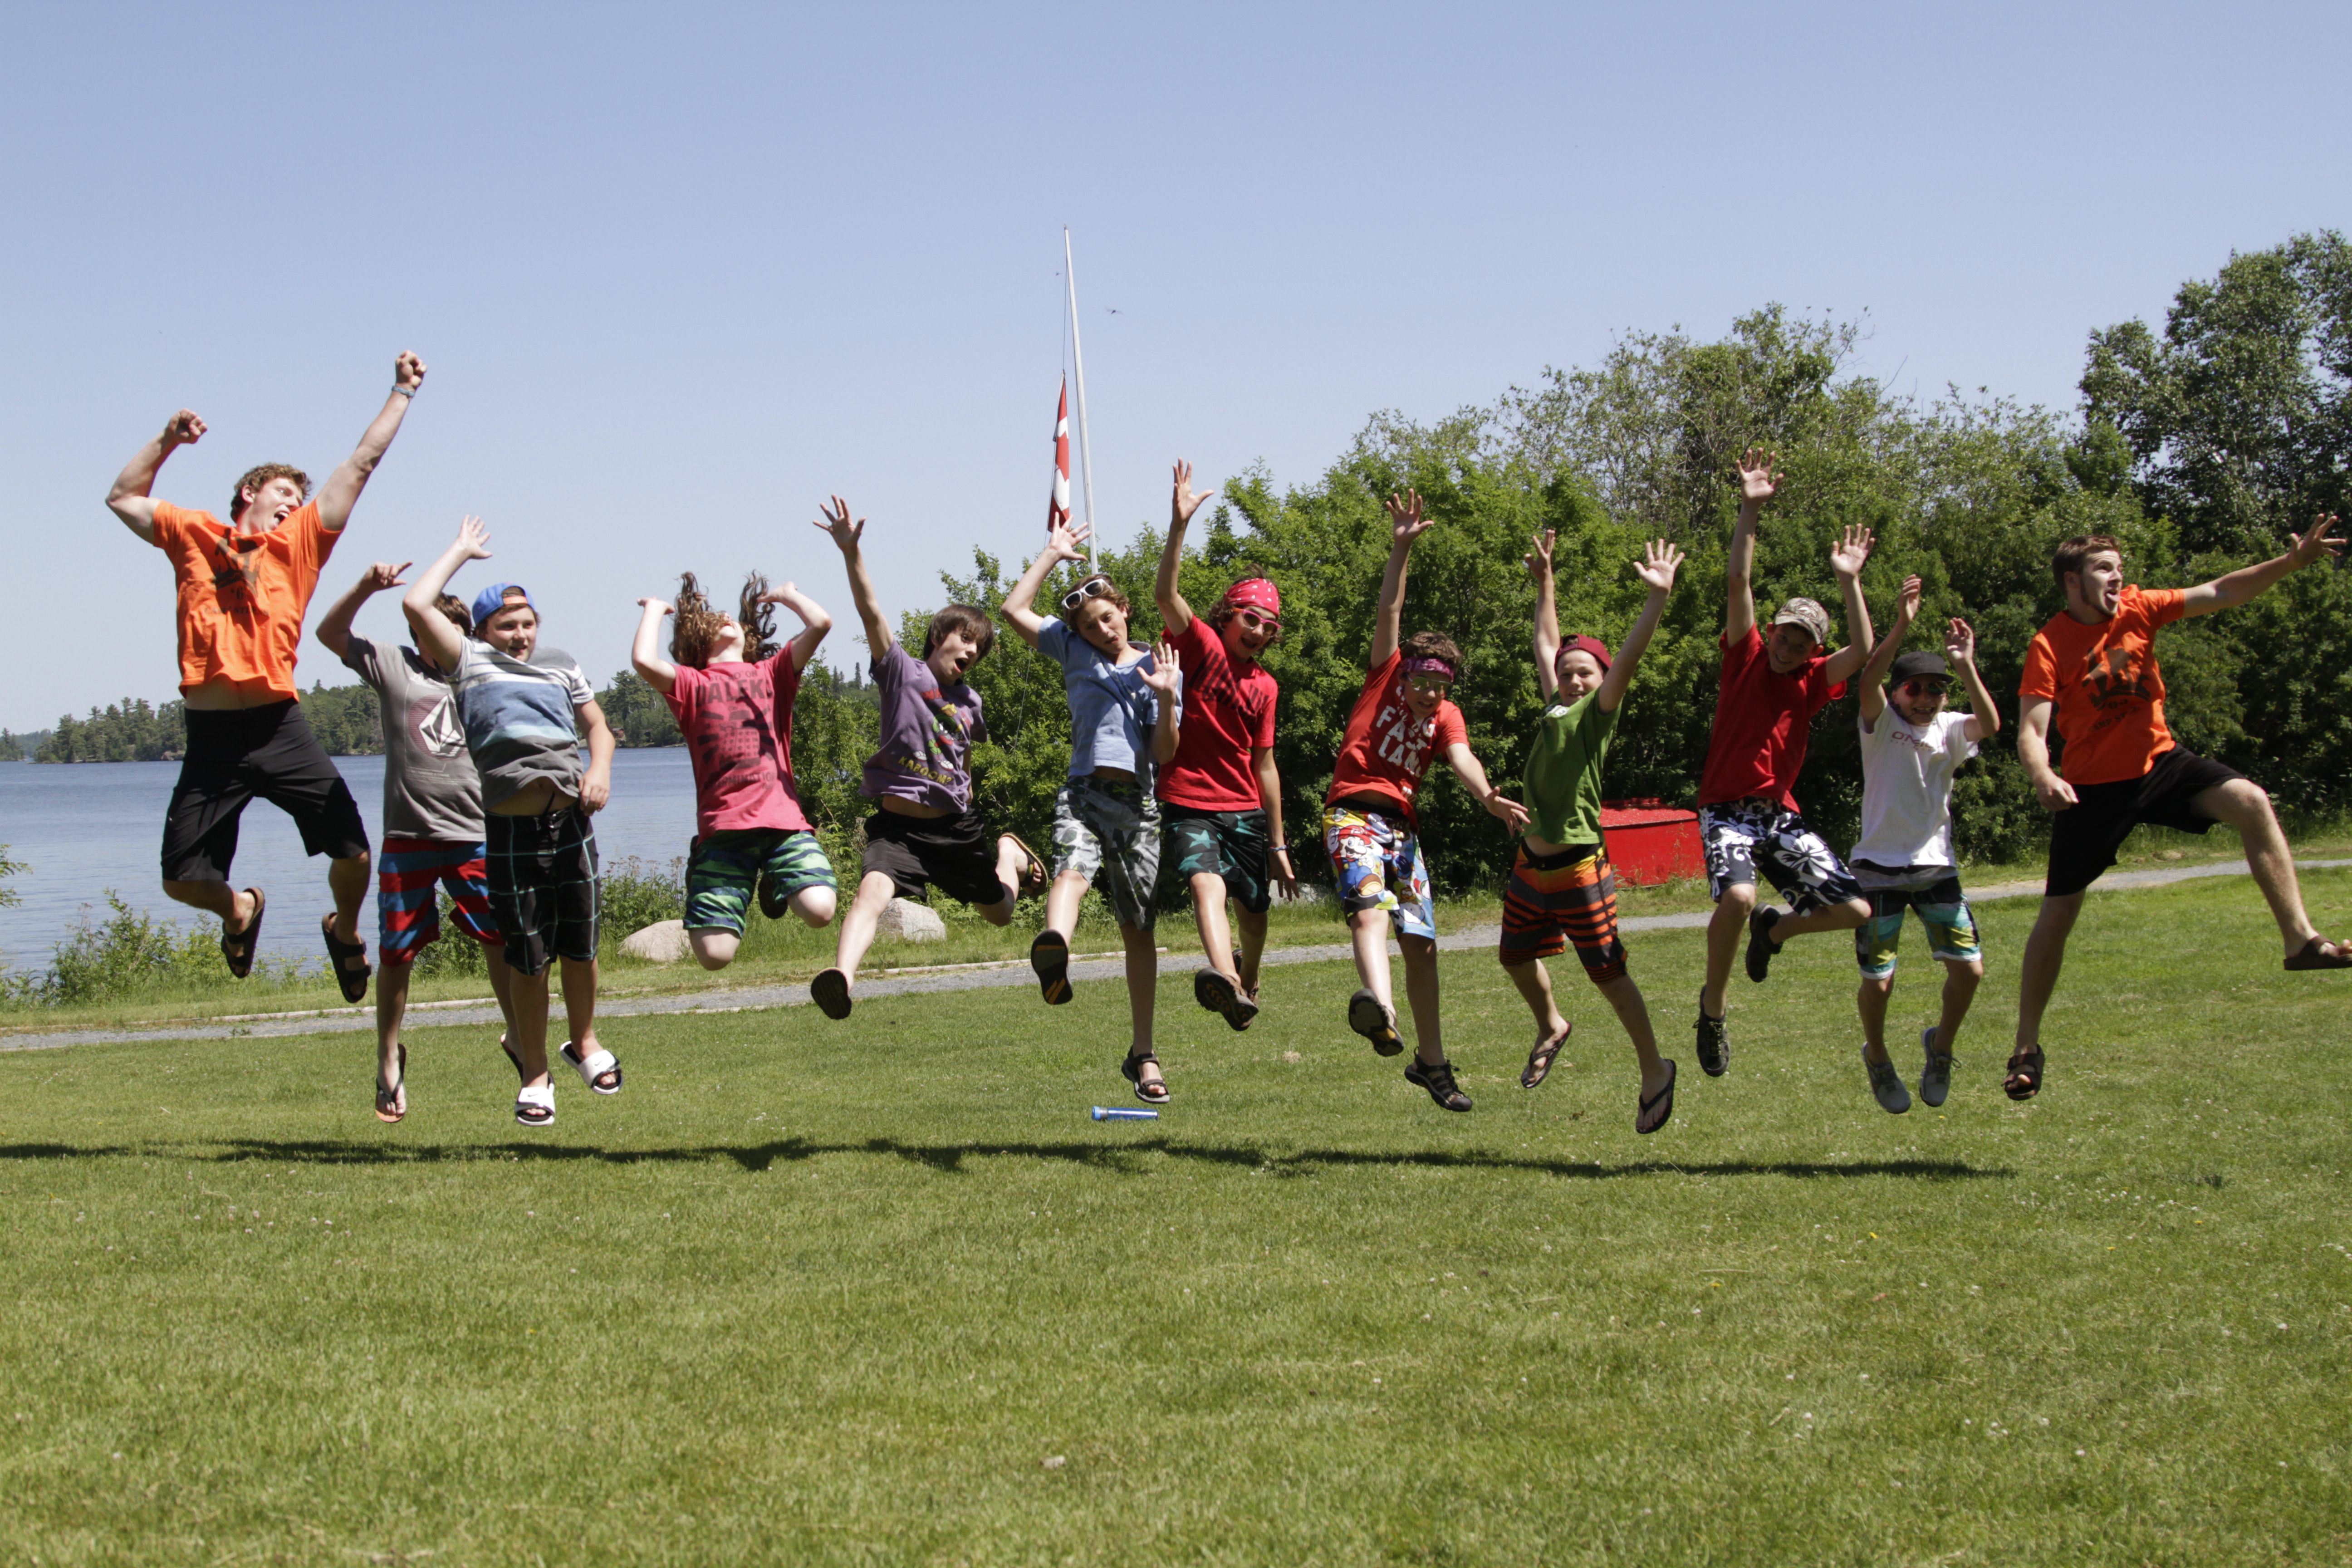 A group of kids jump in the air in excitement, surrounded by blue sky